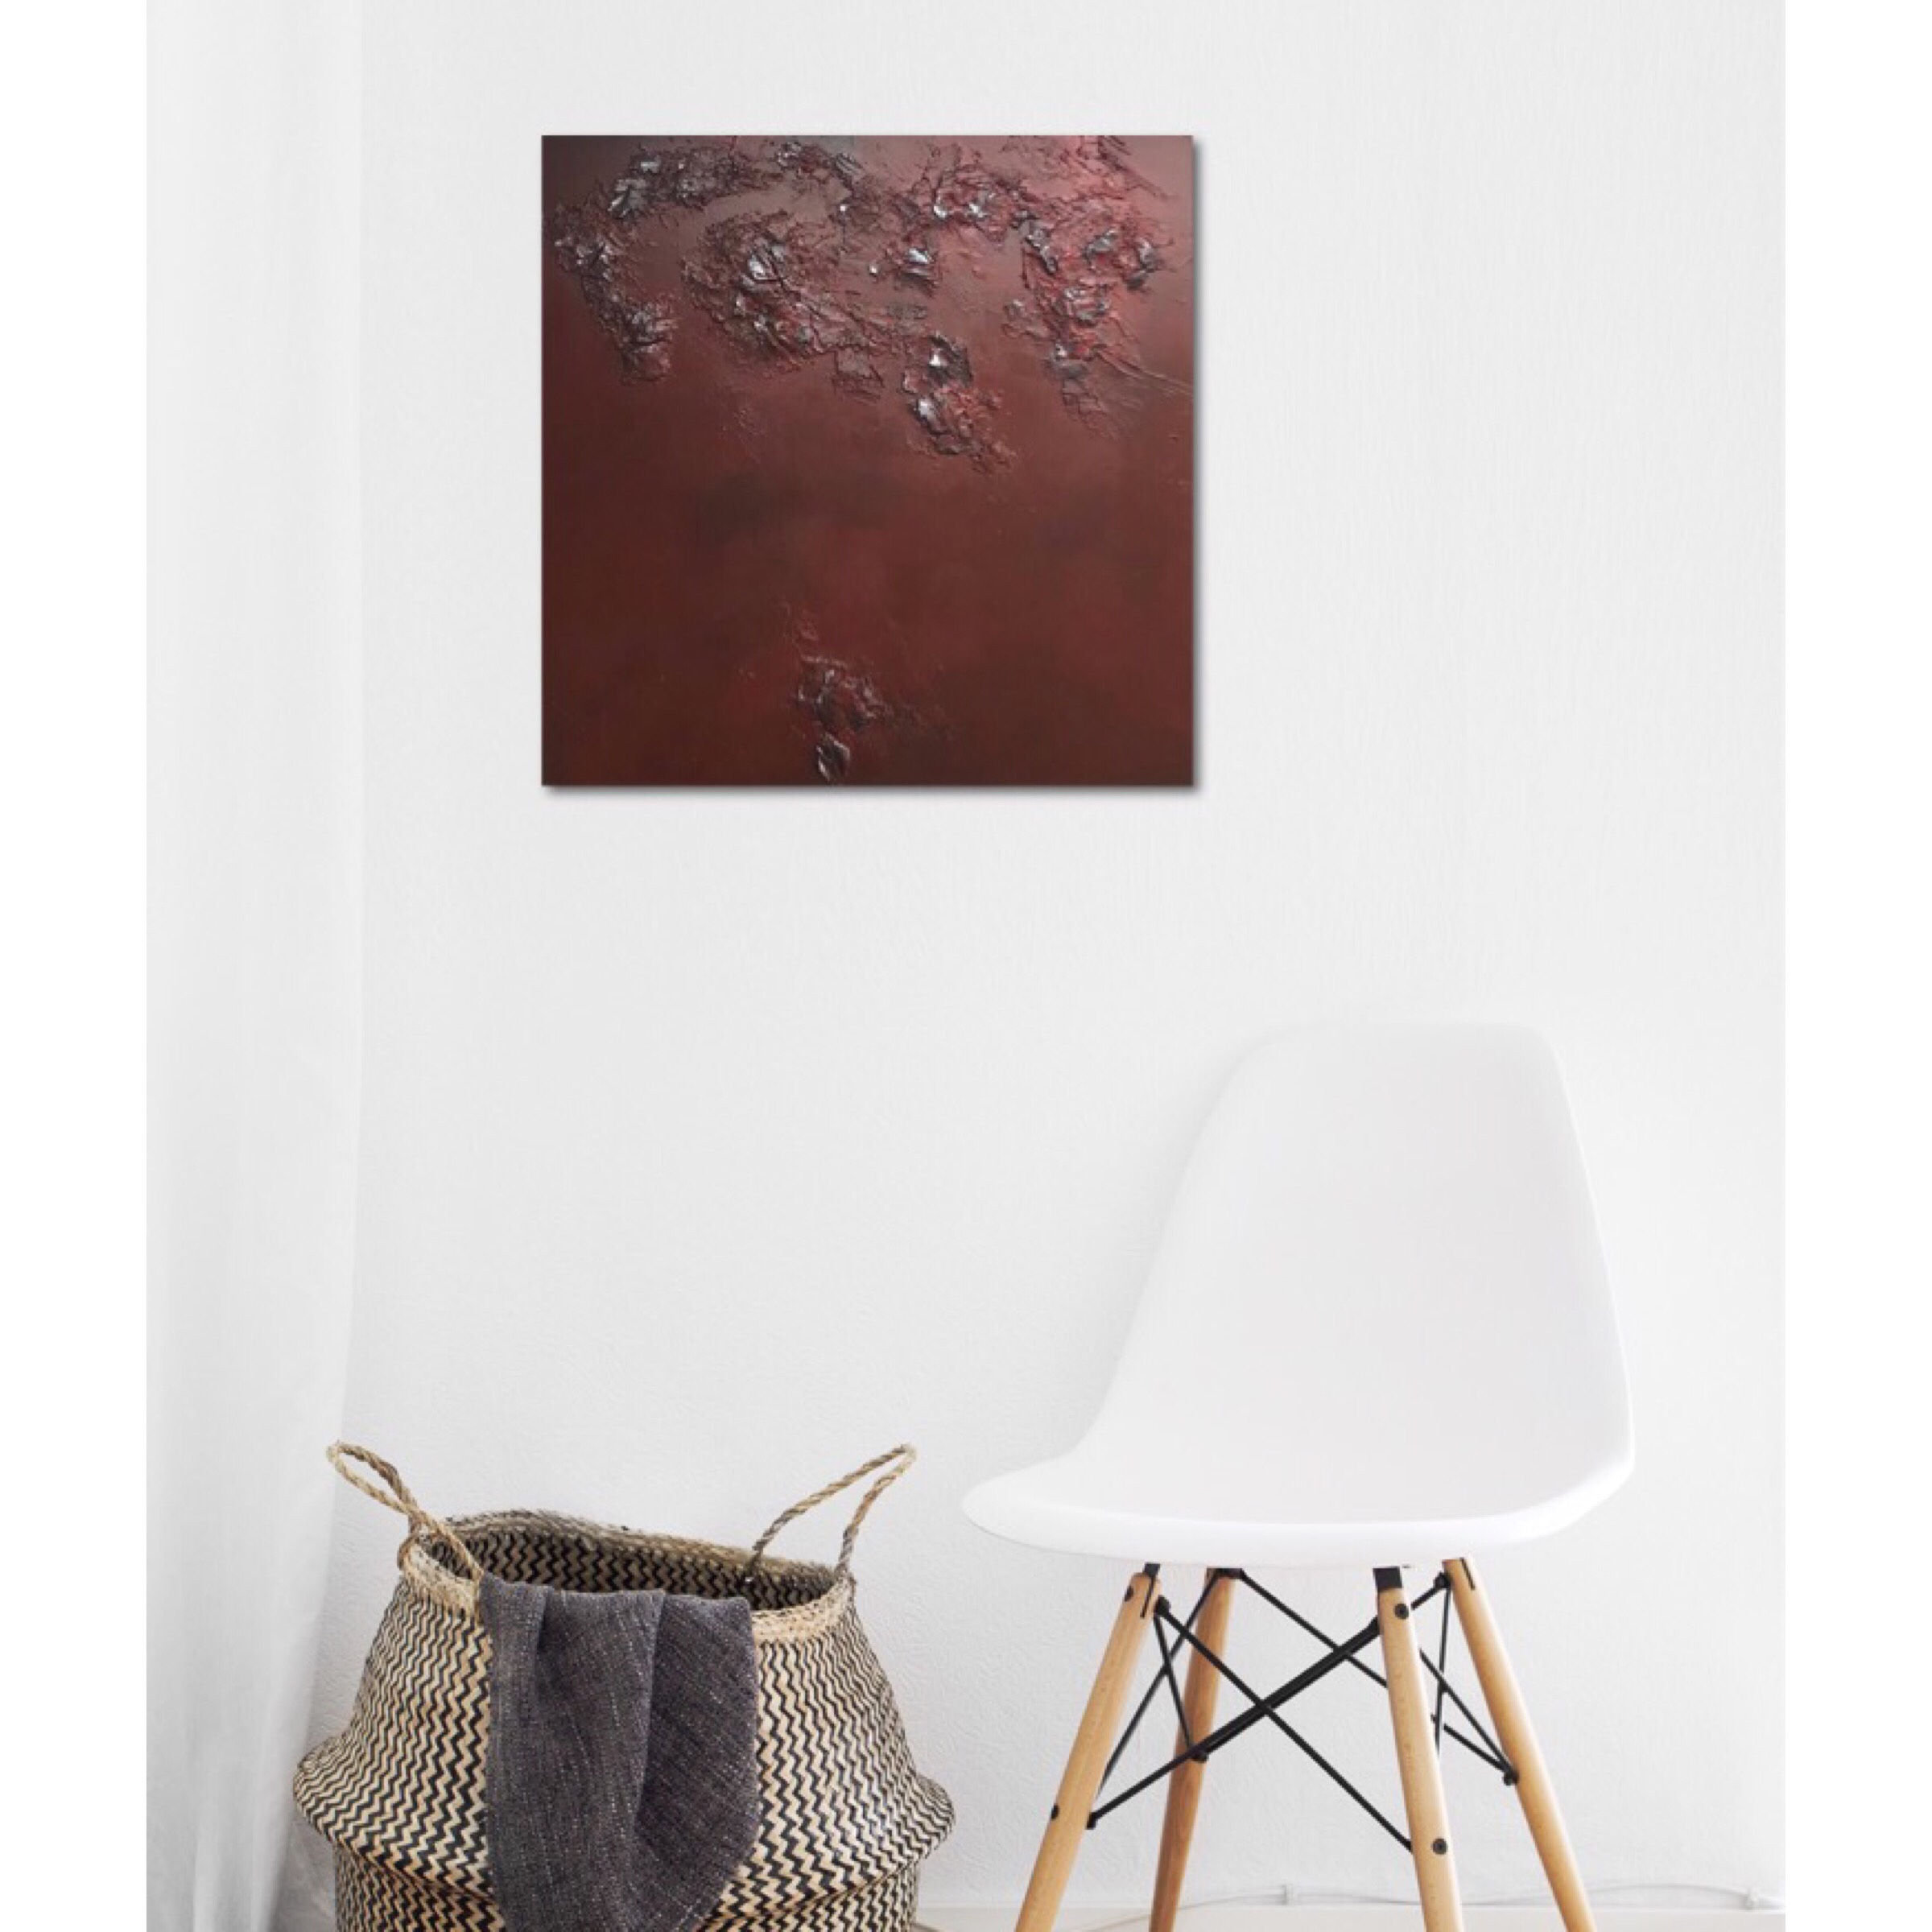 Interior design: Textured abstract painting in red and a touch of silver